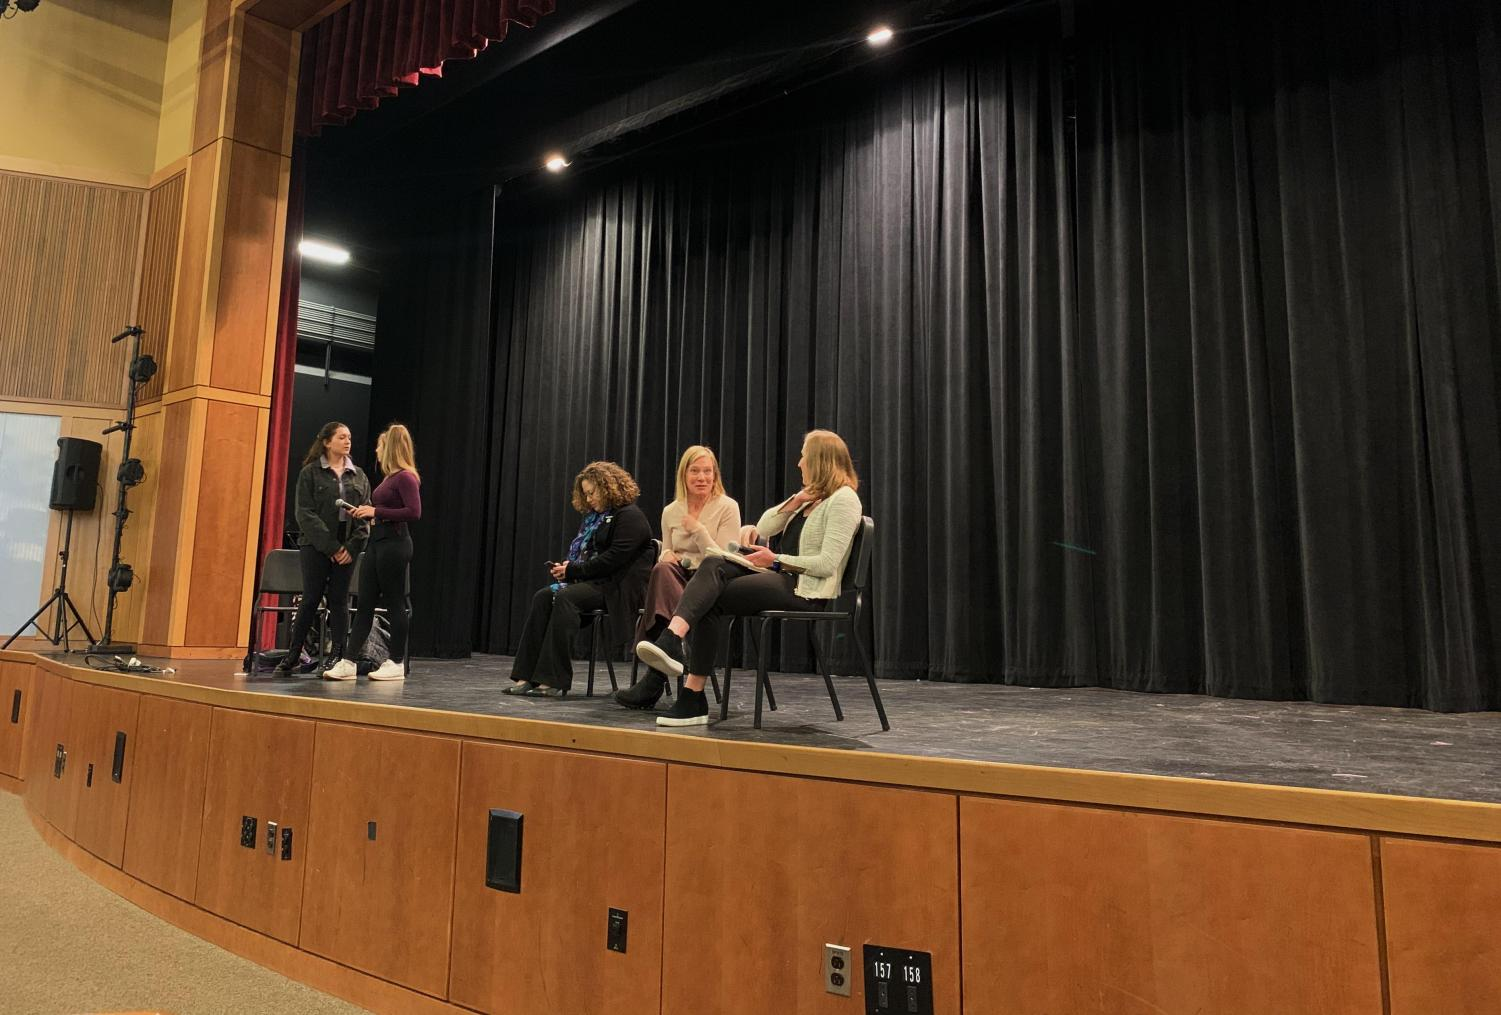 Panel speakers Becca Rausch, Angela Ferrari, and Foster Newcome prepare to speak about their life as working women.